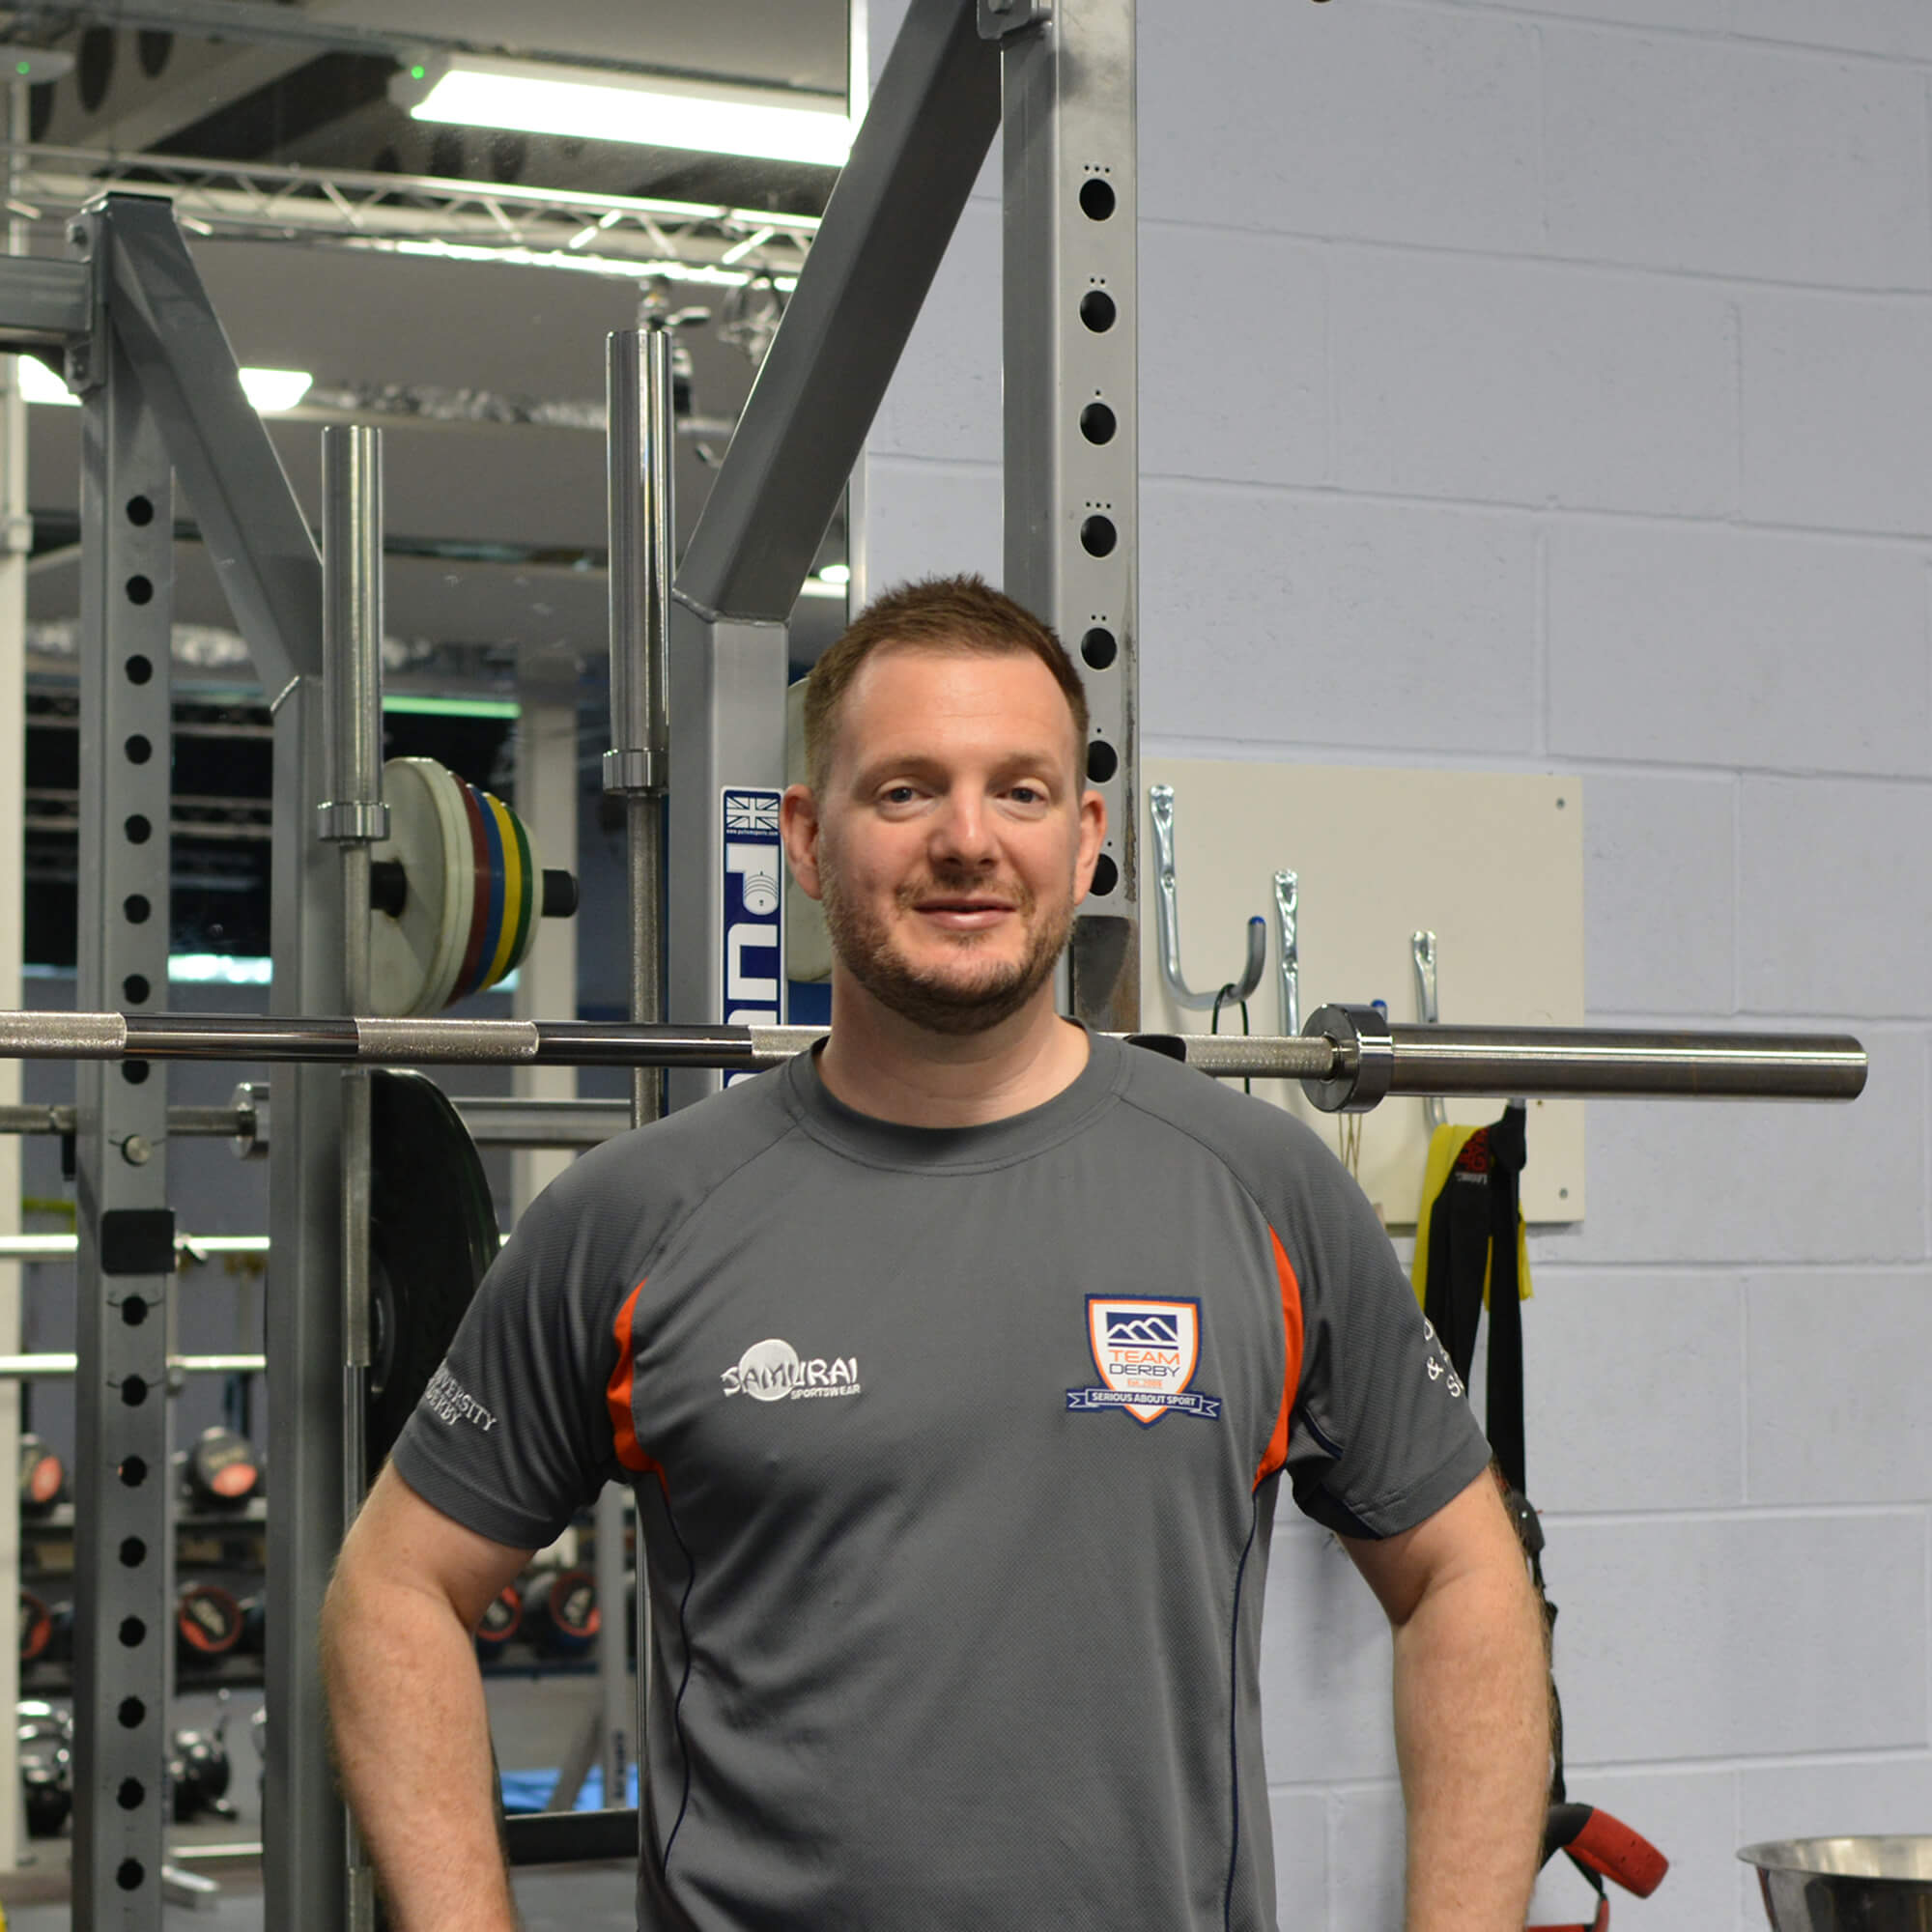 James Keenan in the University of Derby Performance Suite